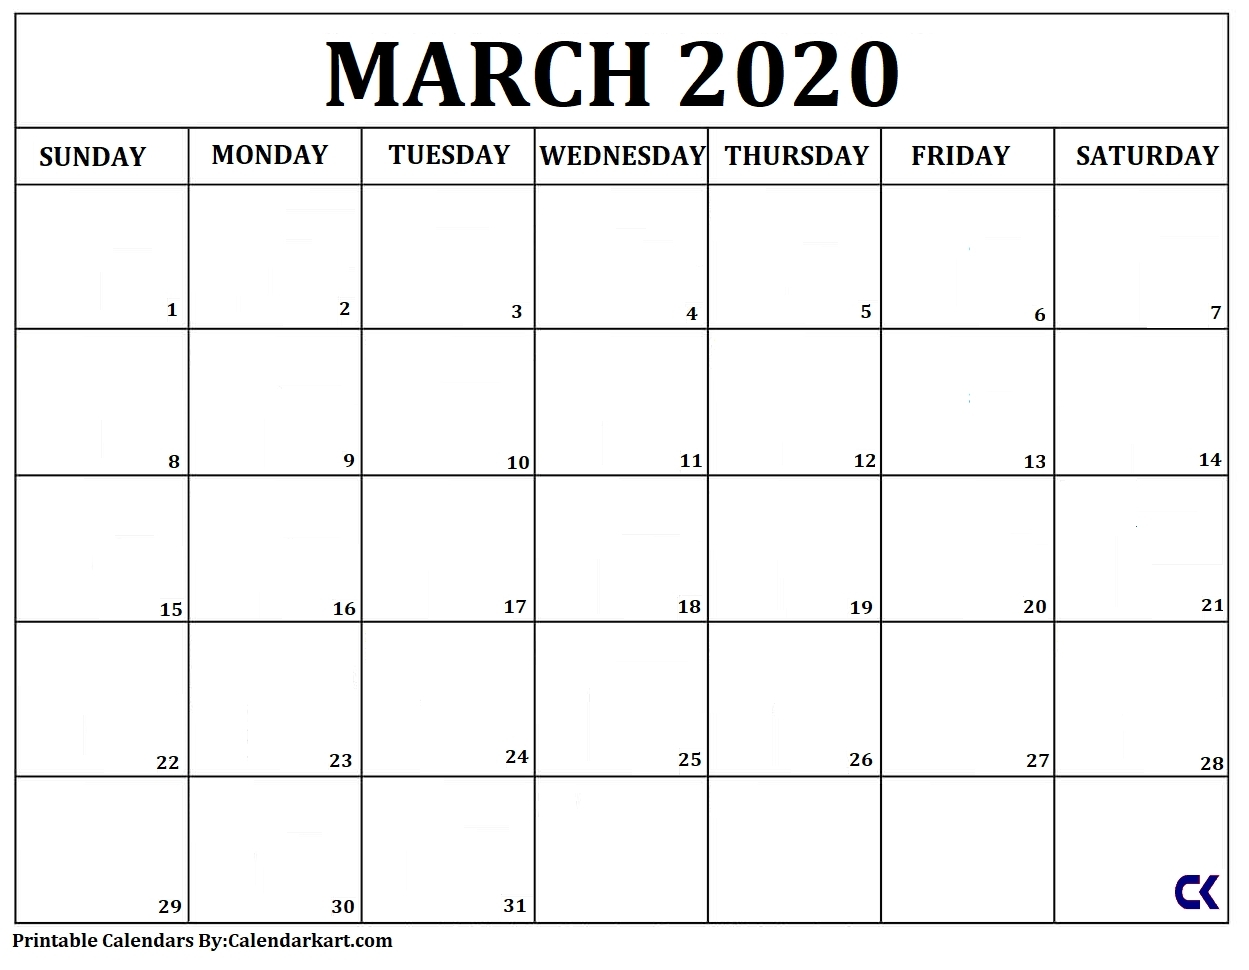 free printable calendar i can type in | month calendar